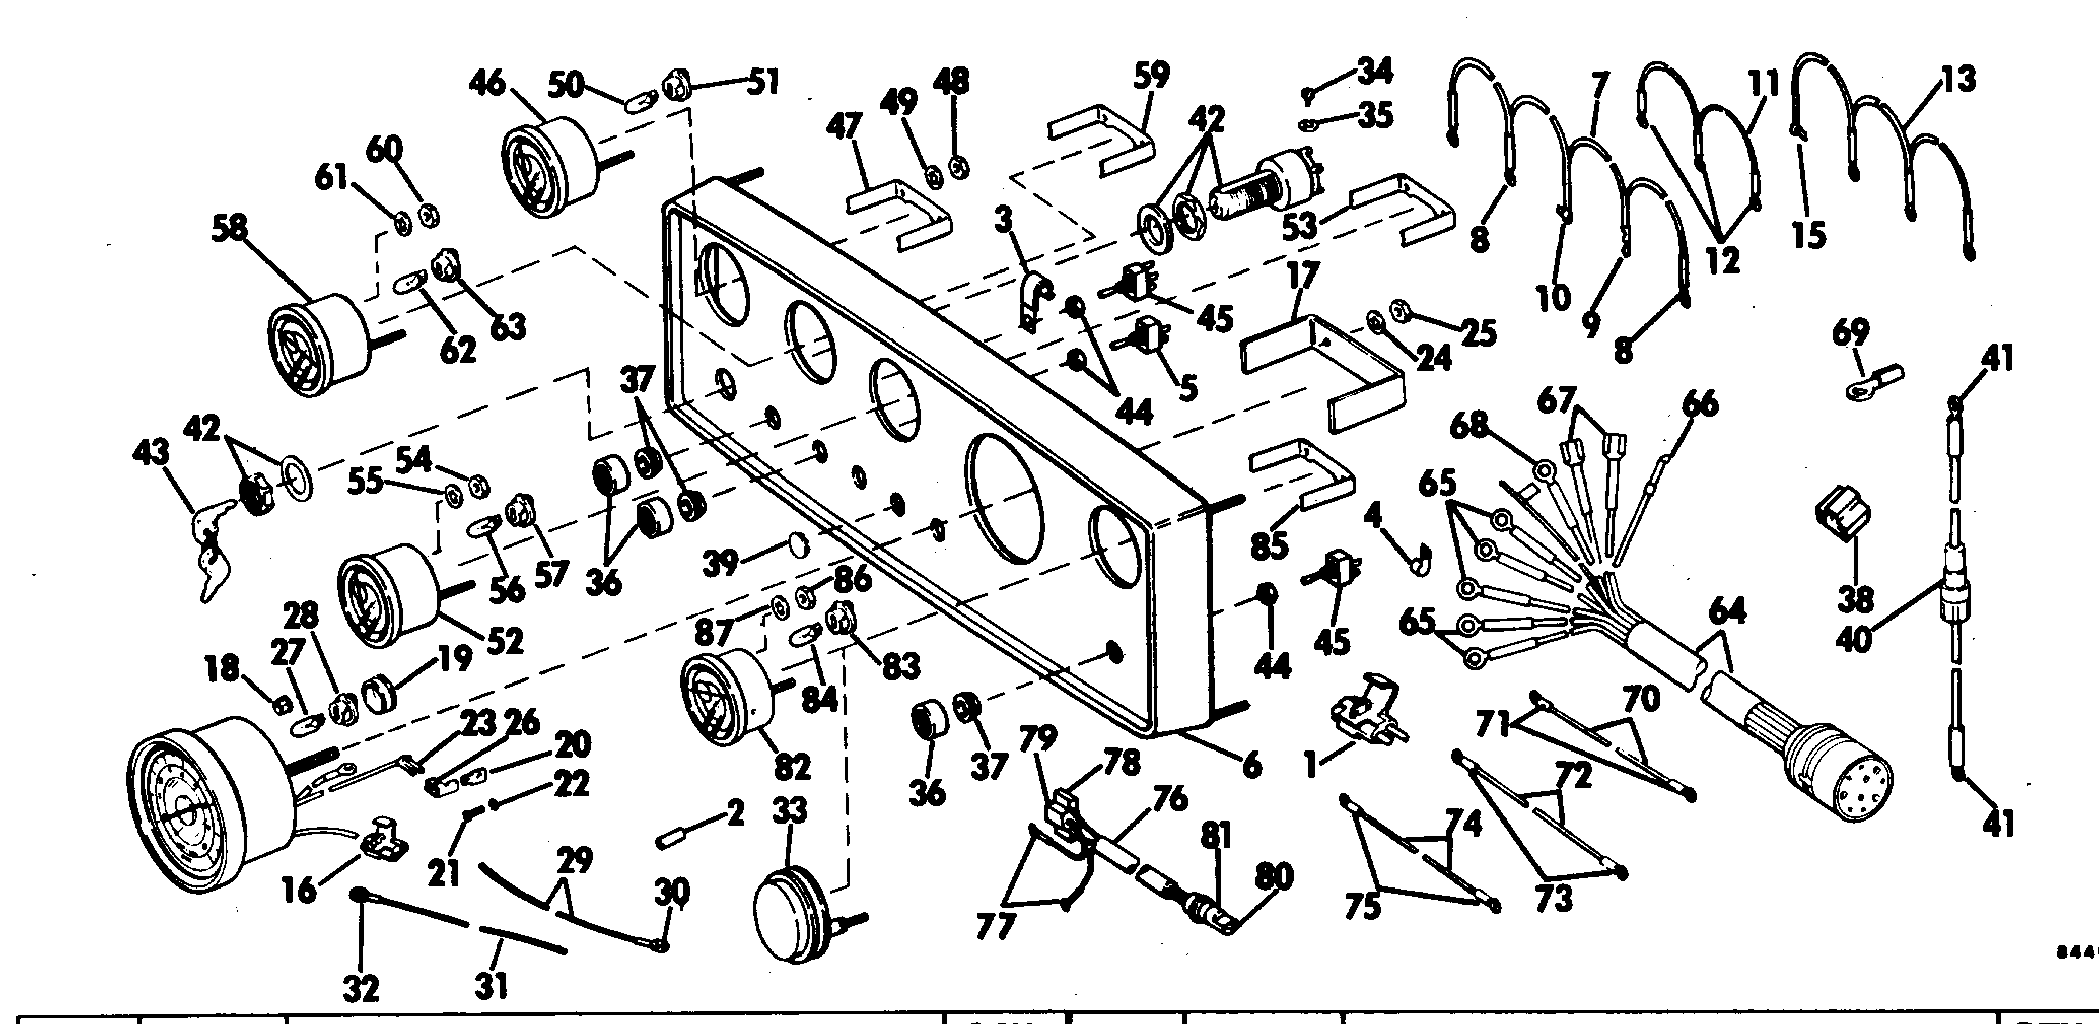 Instrument Panel Assembly Accessories for 1978 OMC Sterndrives